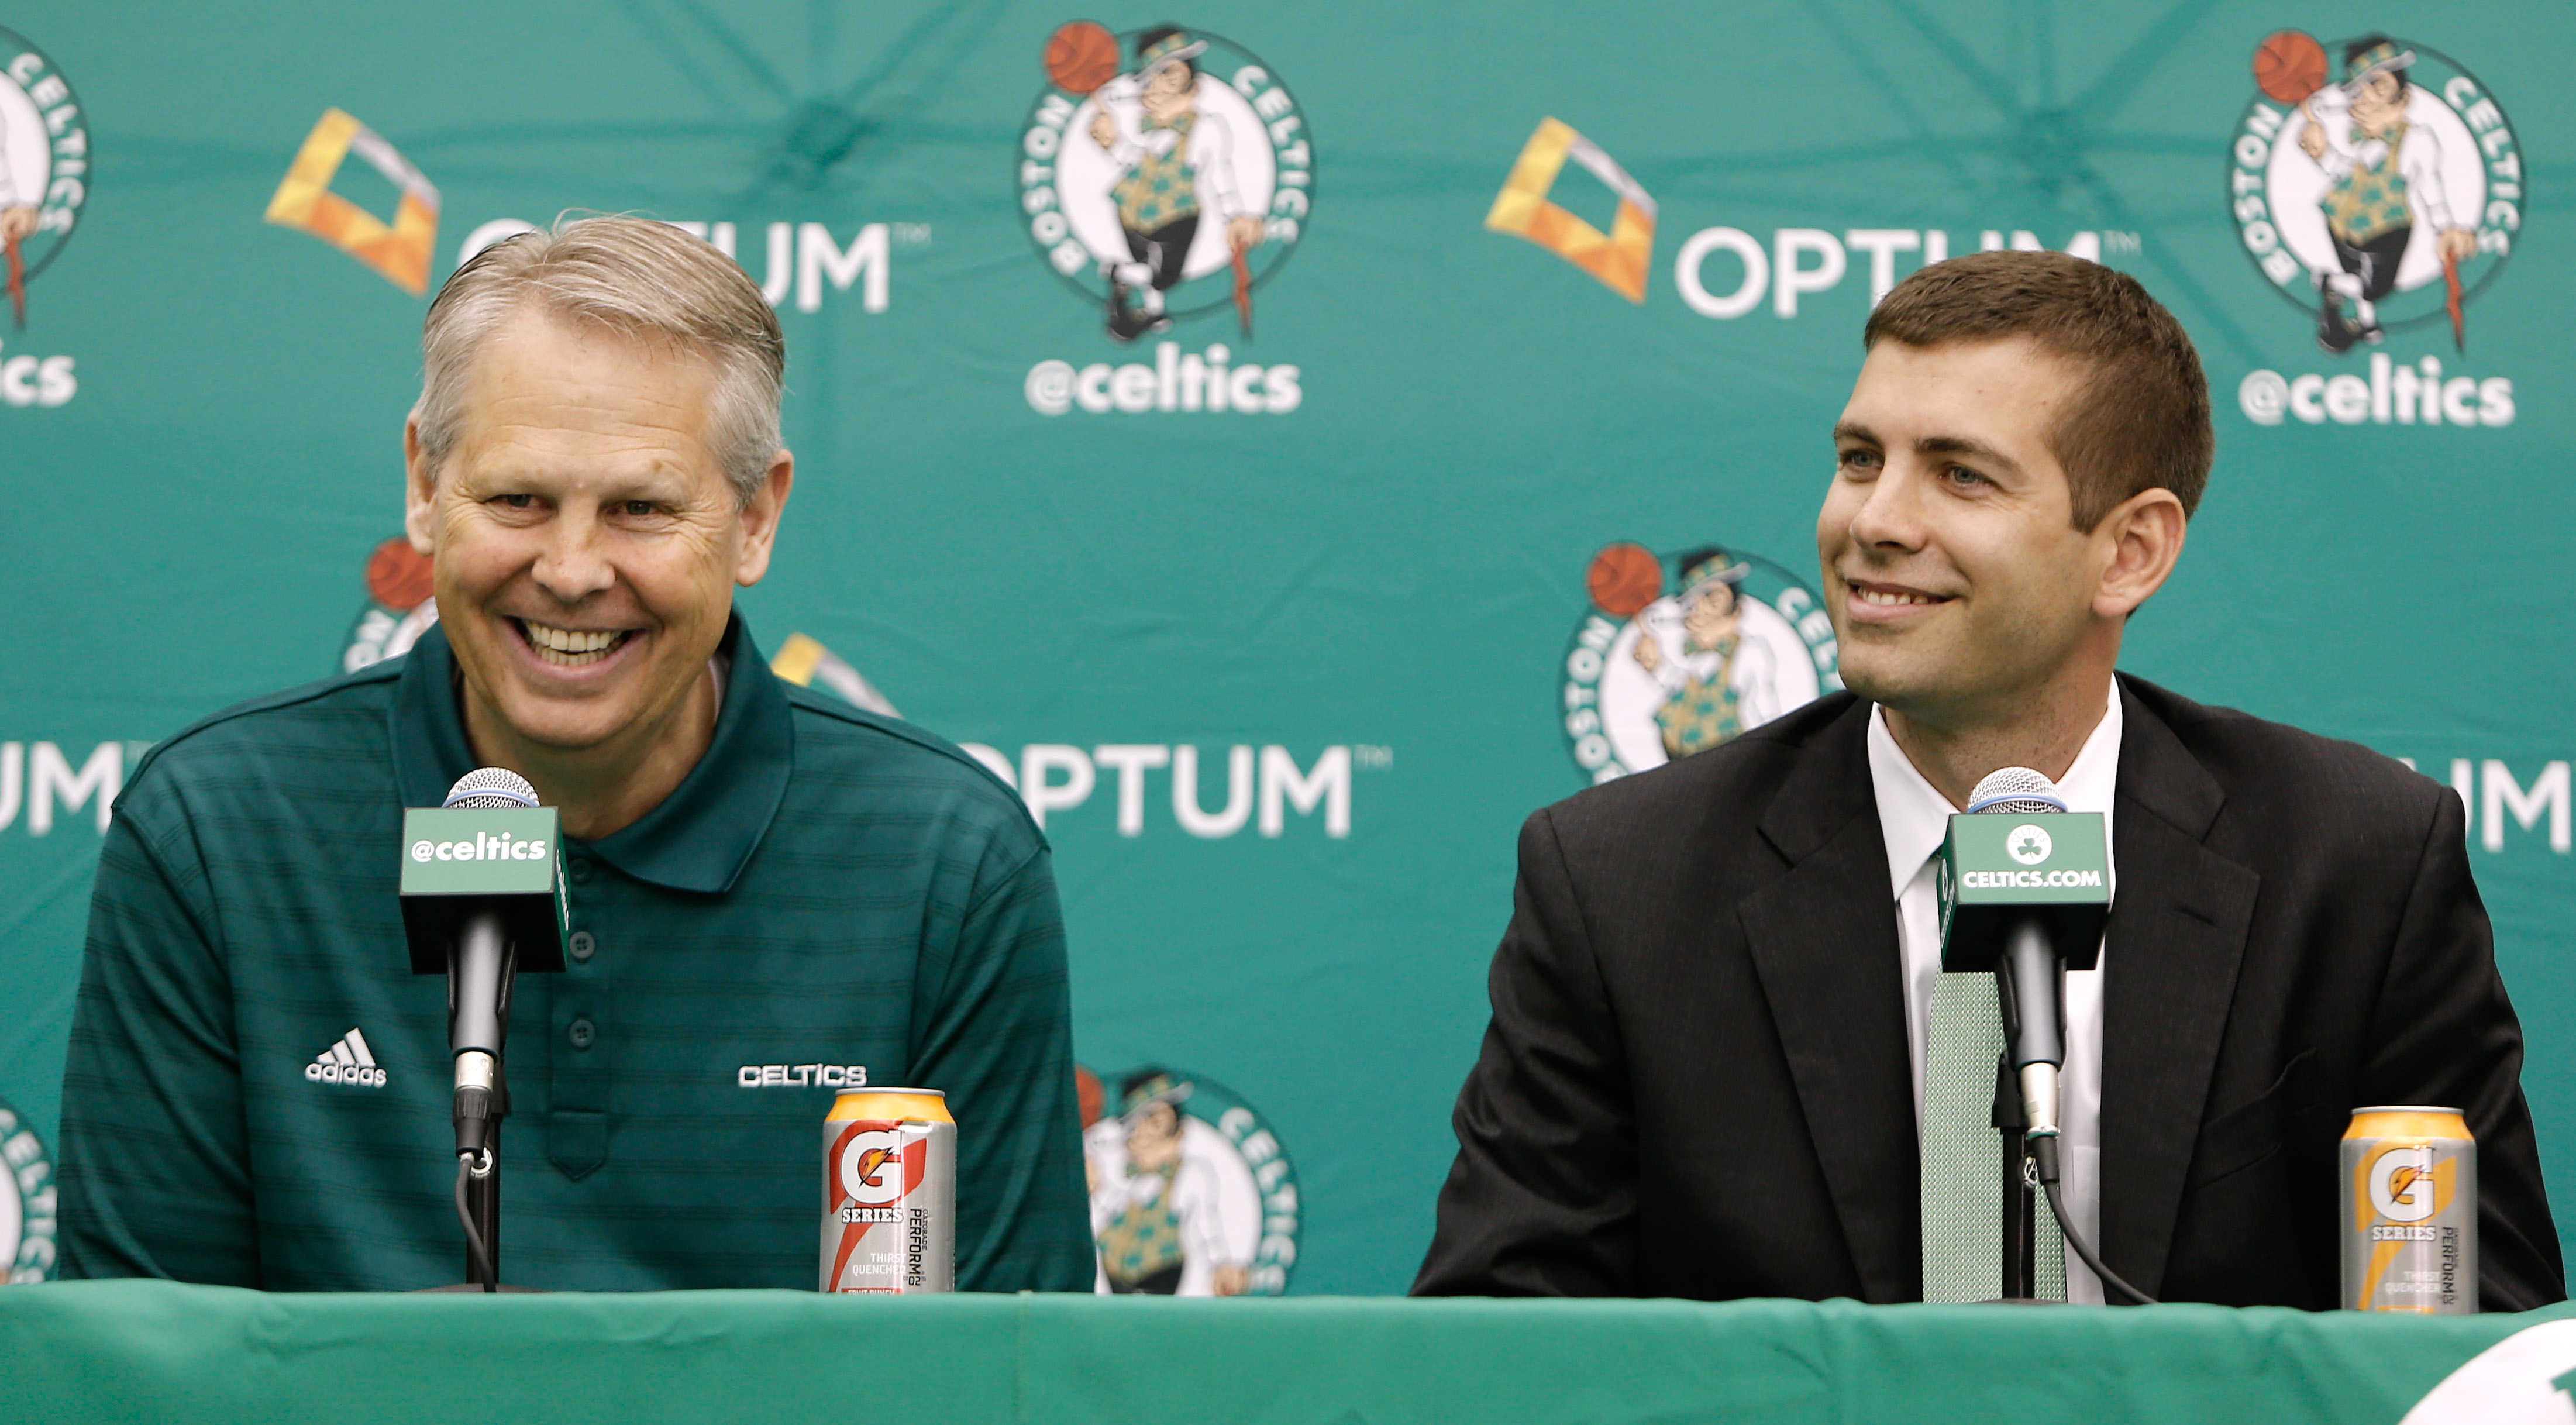 Jul 5, 2013; Waltham, MA, USA; New Boston Celtics head coach Brad Stevens, right, shares a laugh with General Manager Danny Ainge during a news conference announcing Stevens new position. Mandatory Credit: Winslow Townson-USA TODAY Sports